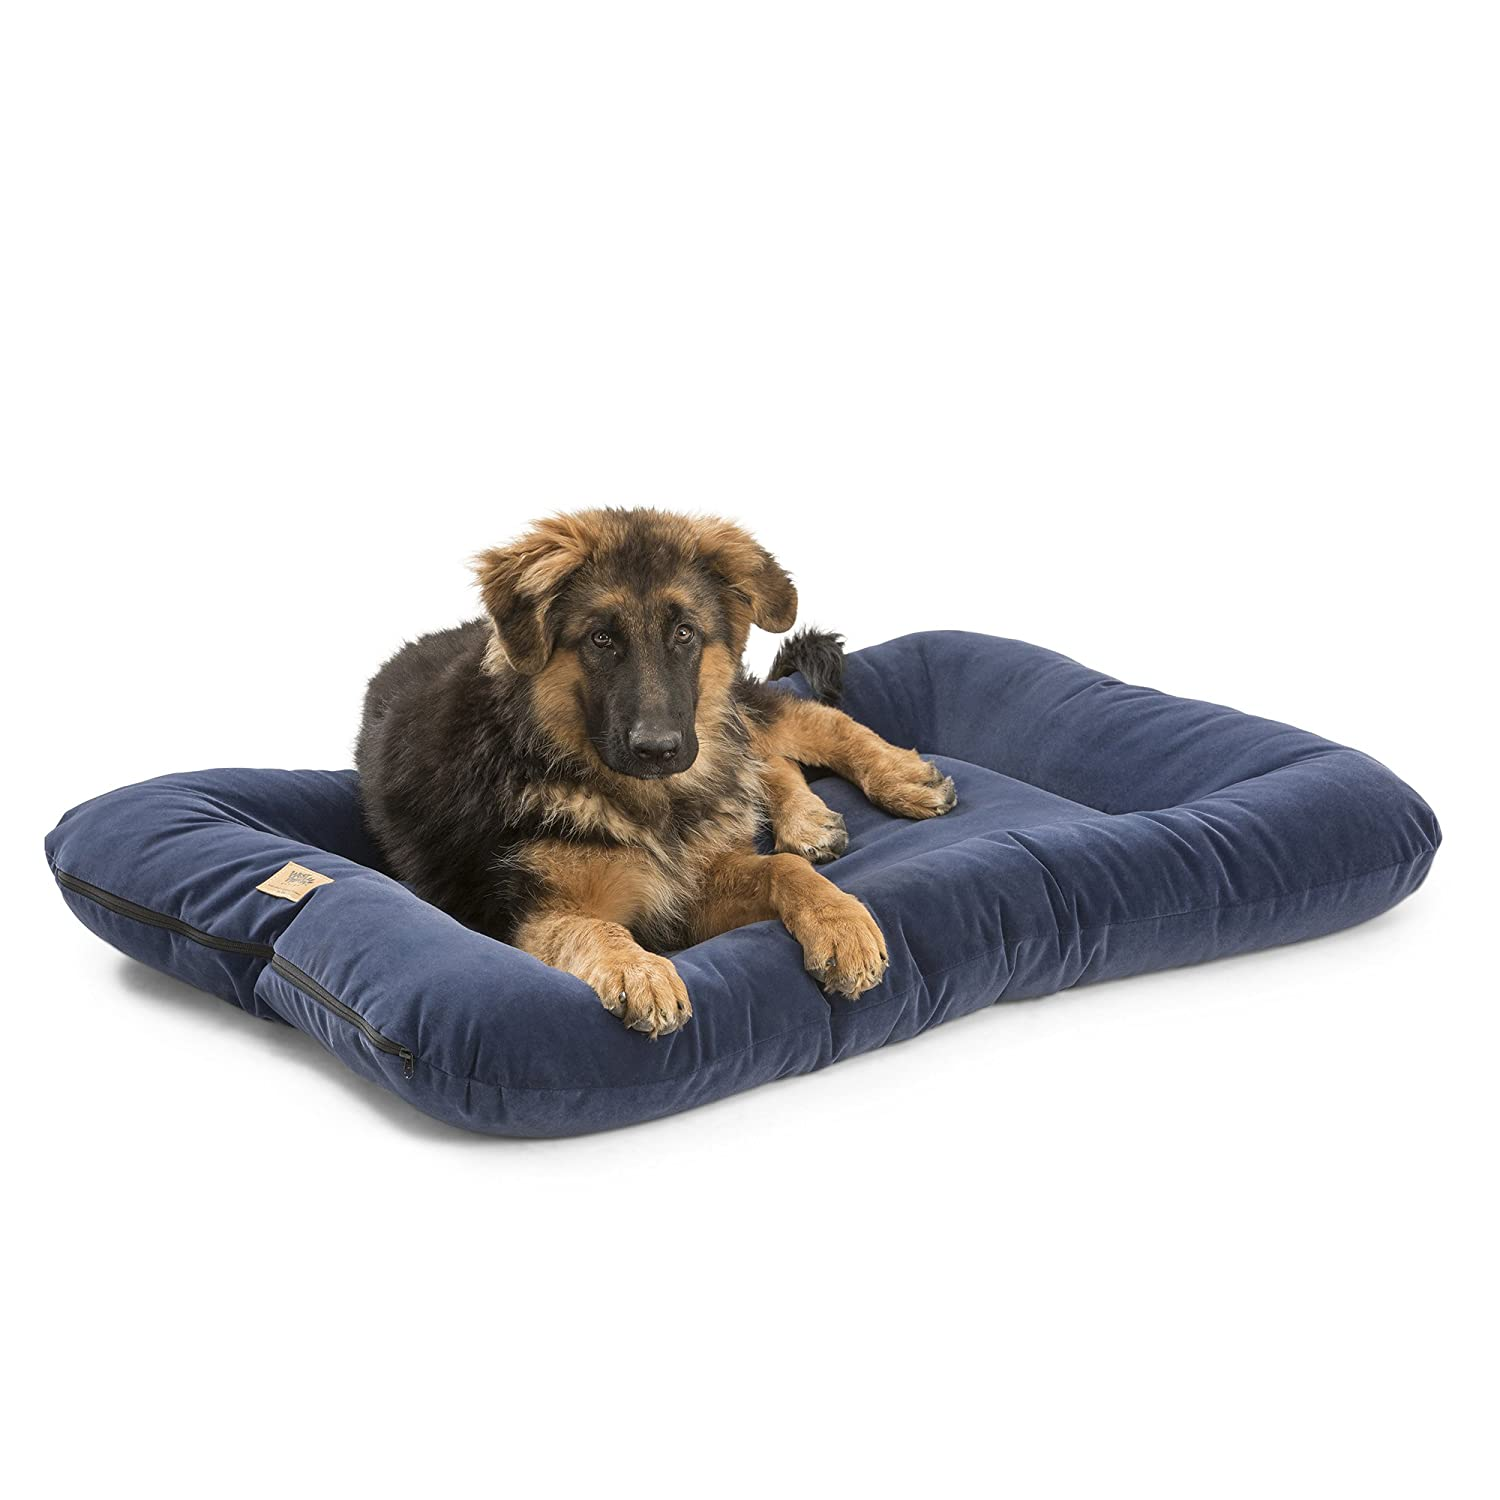 Midnight X-Large Midnight X-Large West Paw Design Heyday Dog Bed with Microsuede, Super Durable and Easy to Clean Pet Bed, Midnight, X-Large